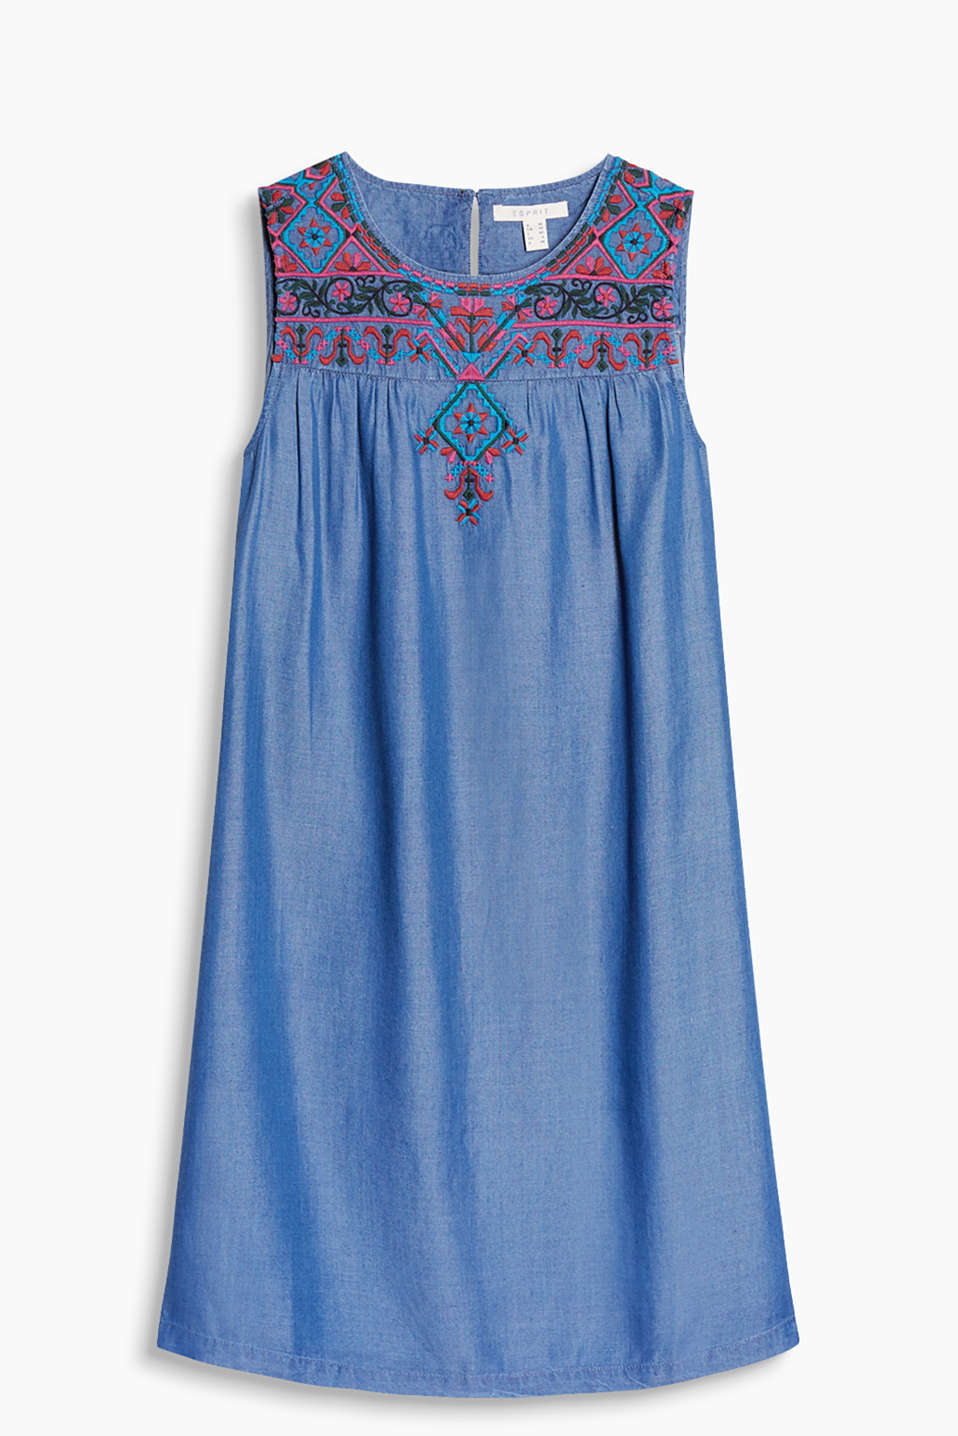 Straight, figure-skimming dress in flowing denim with tribal embroidery